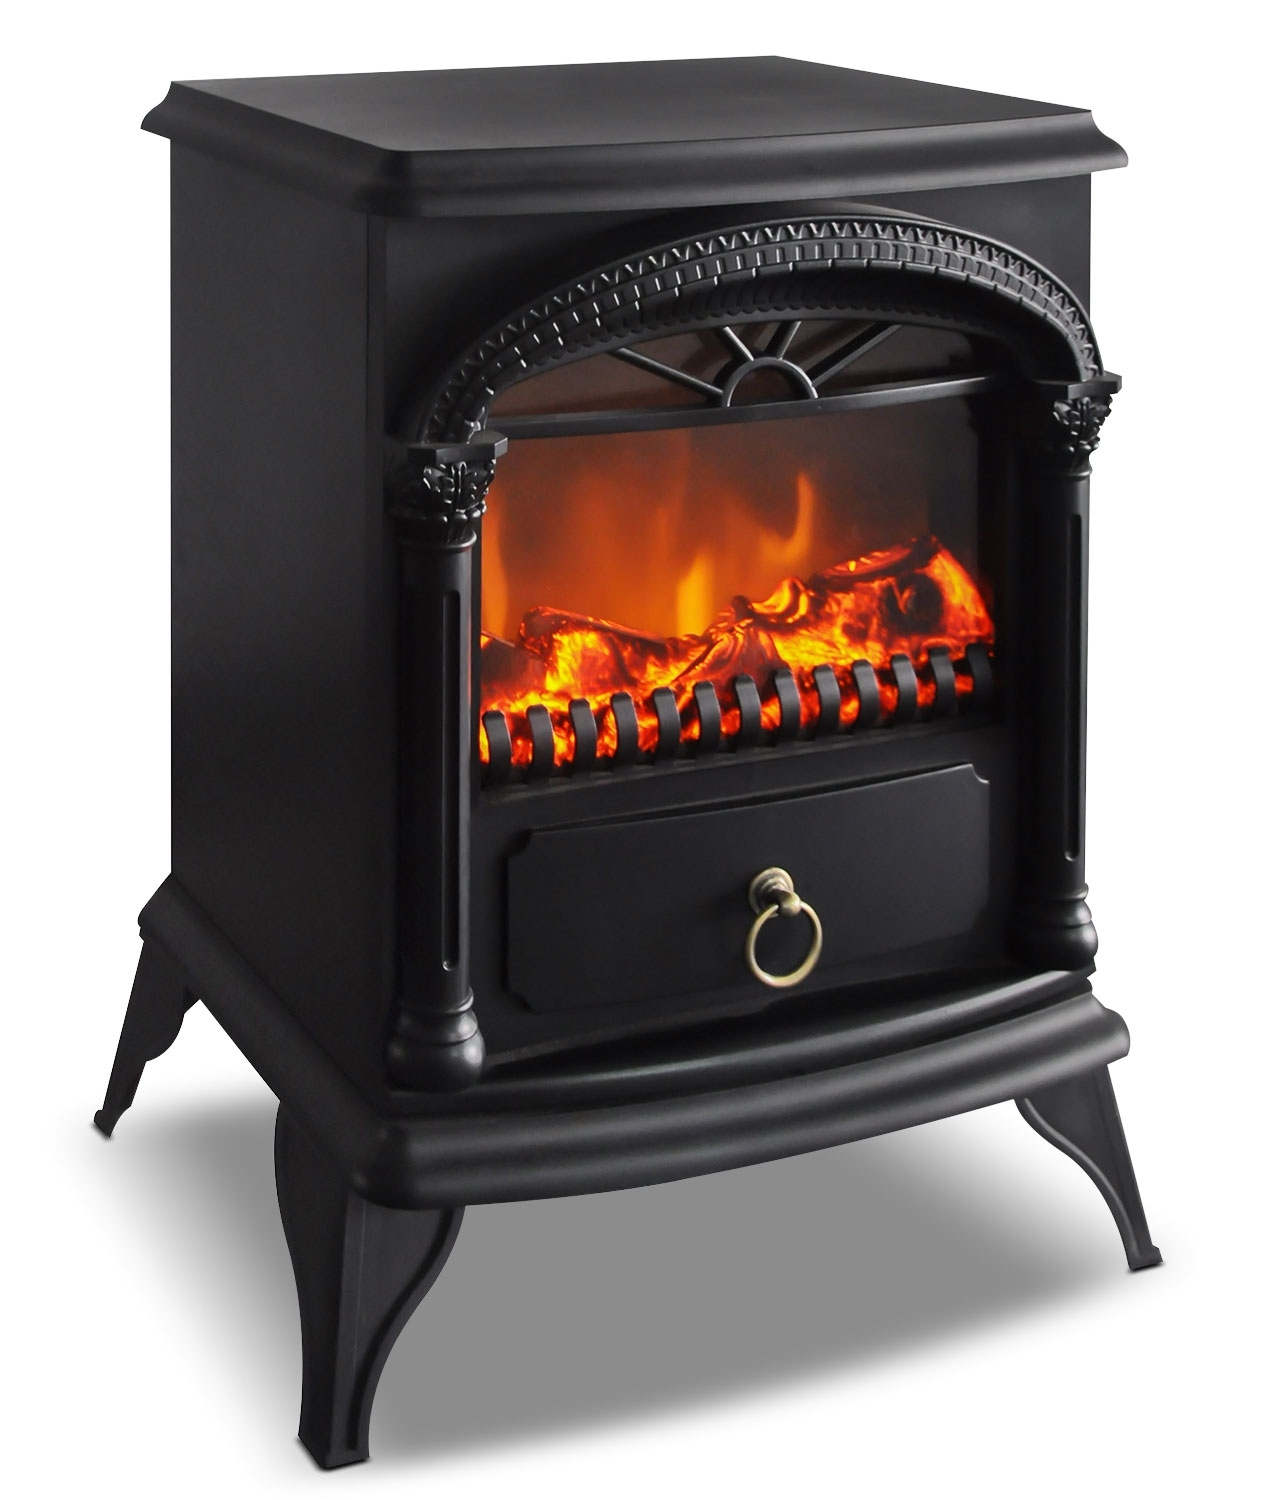 "Norfolk 15"" Freestanding Electric Fireplace"